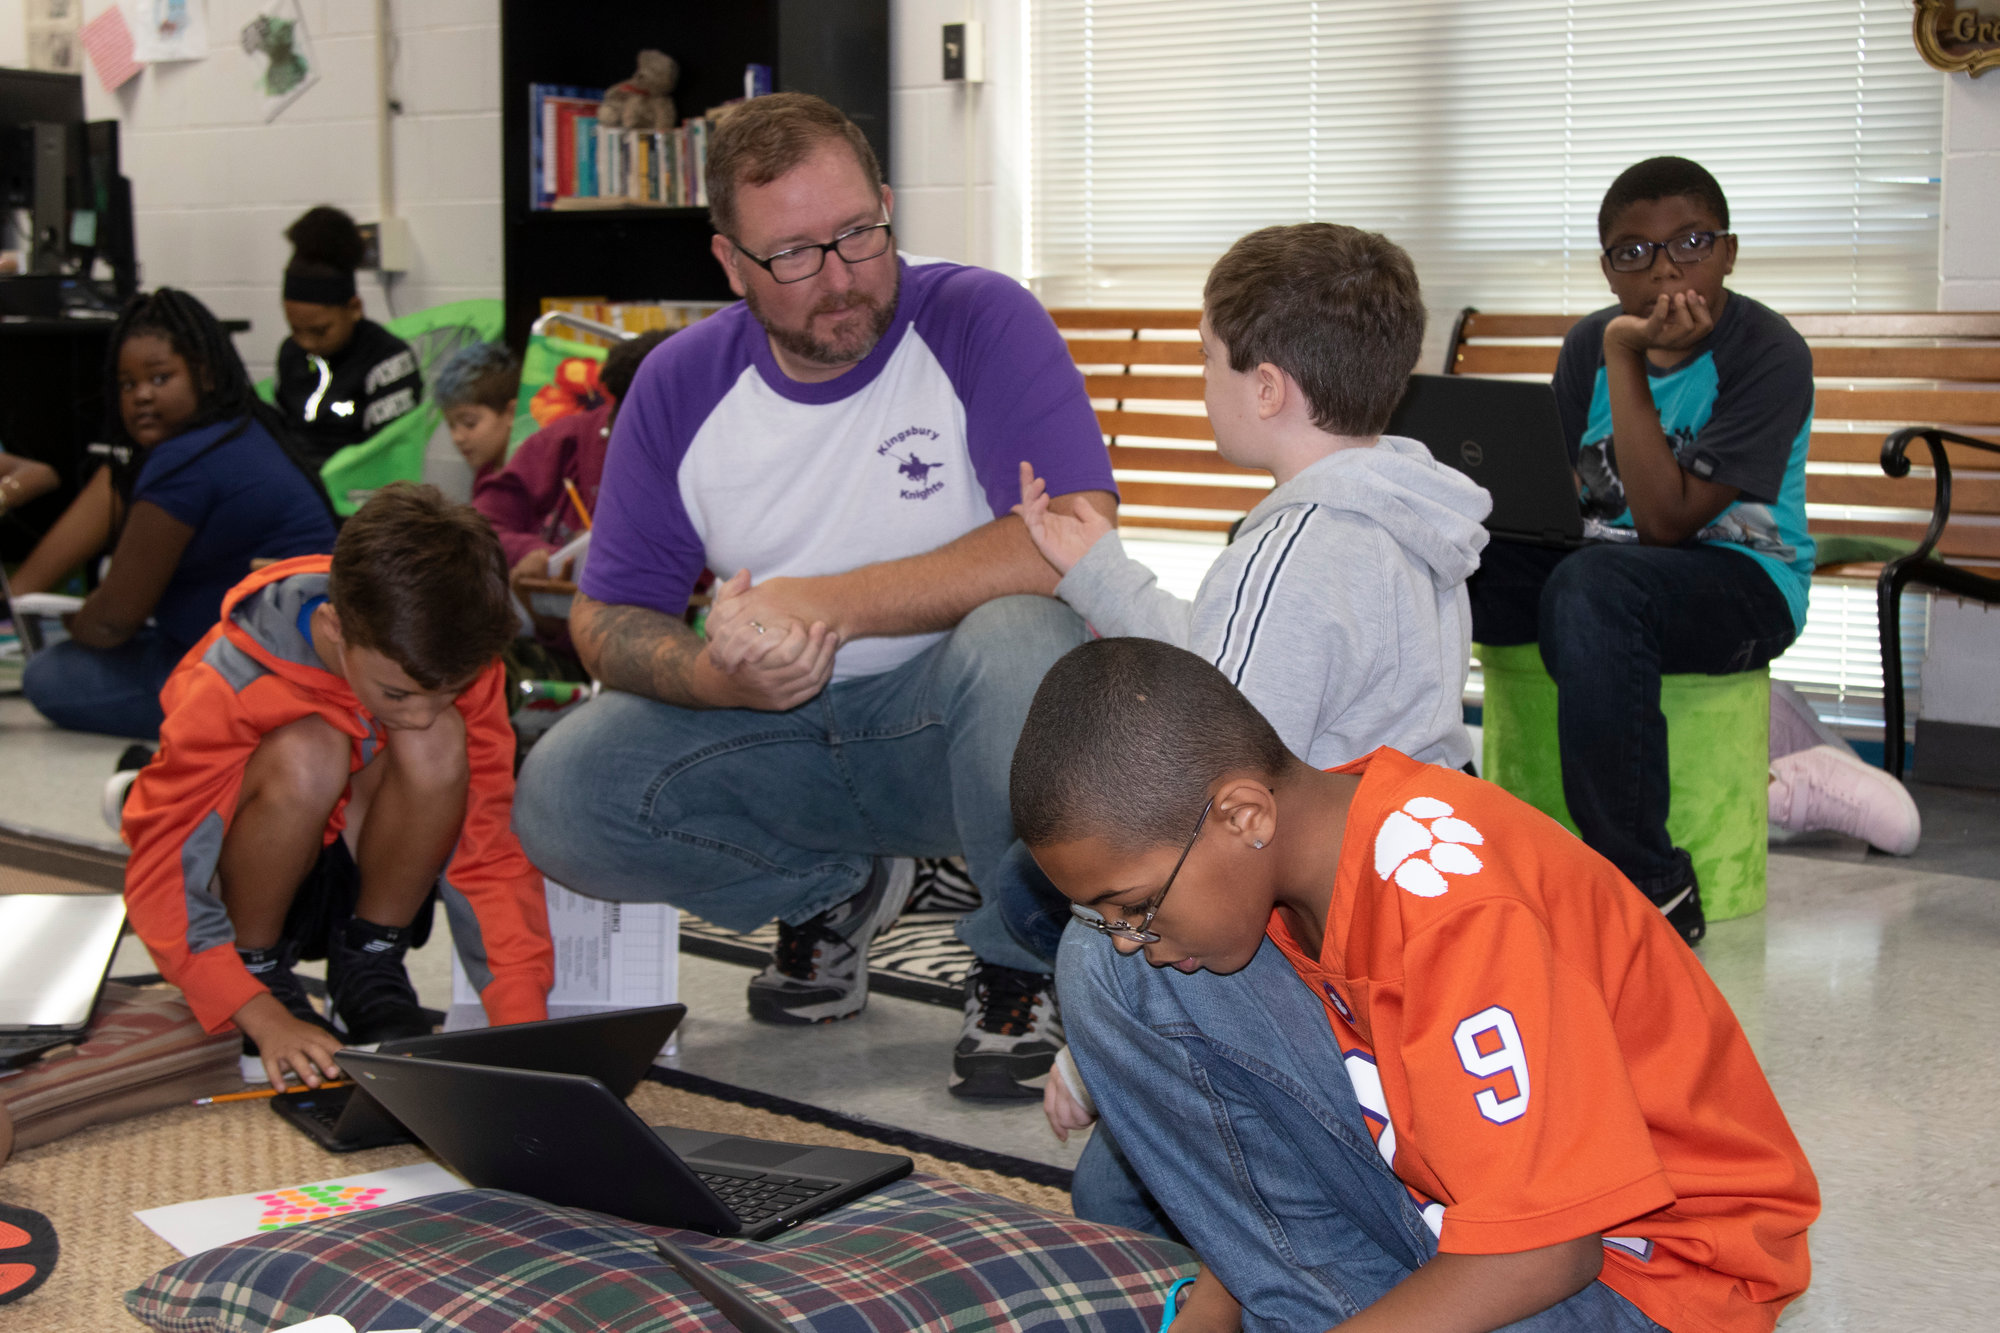 Leroy Steigerwalt helps his fifth-grade students understand a problem-solving question.